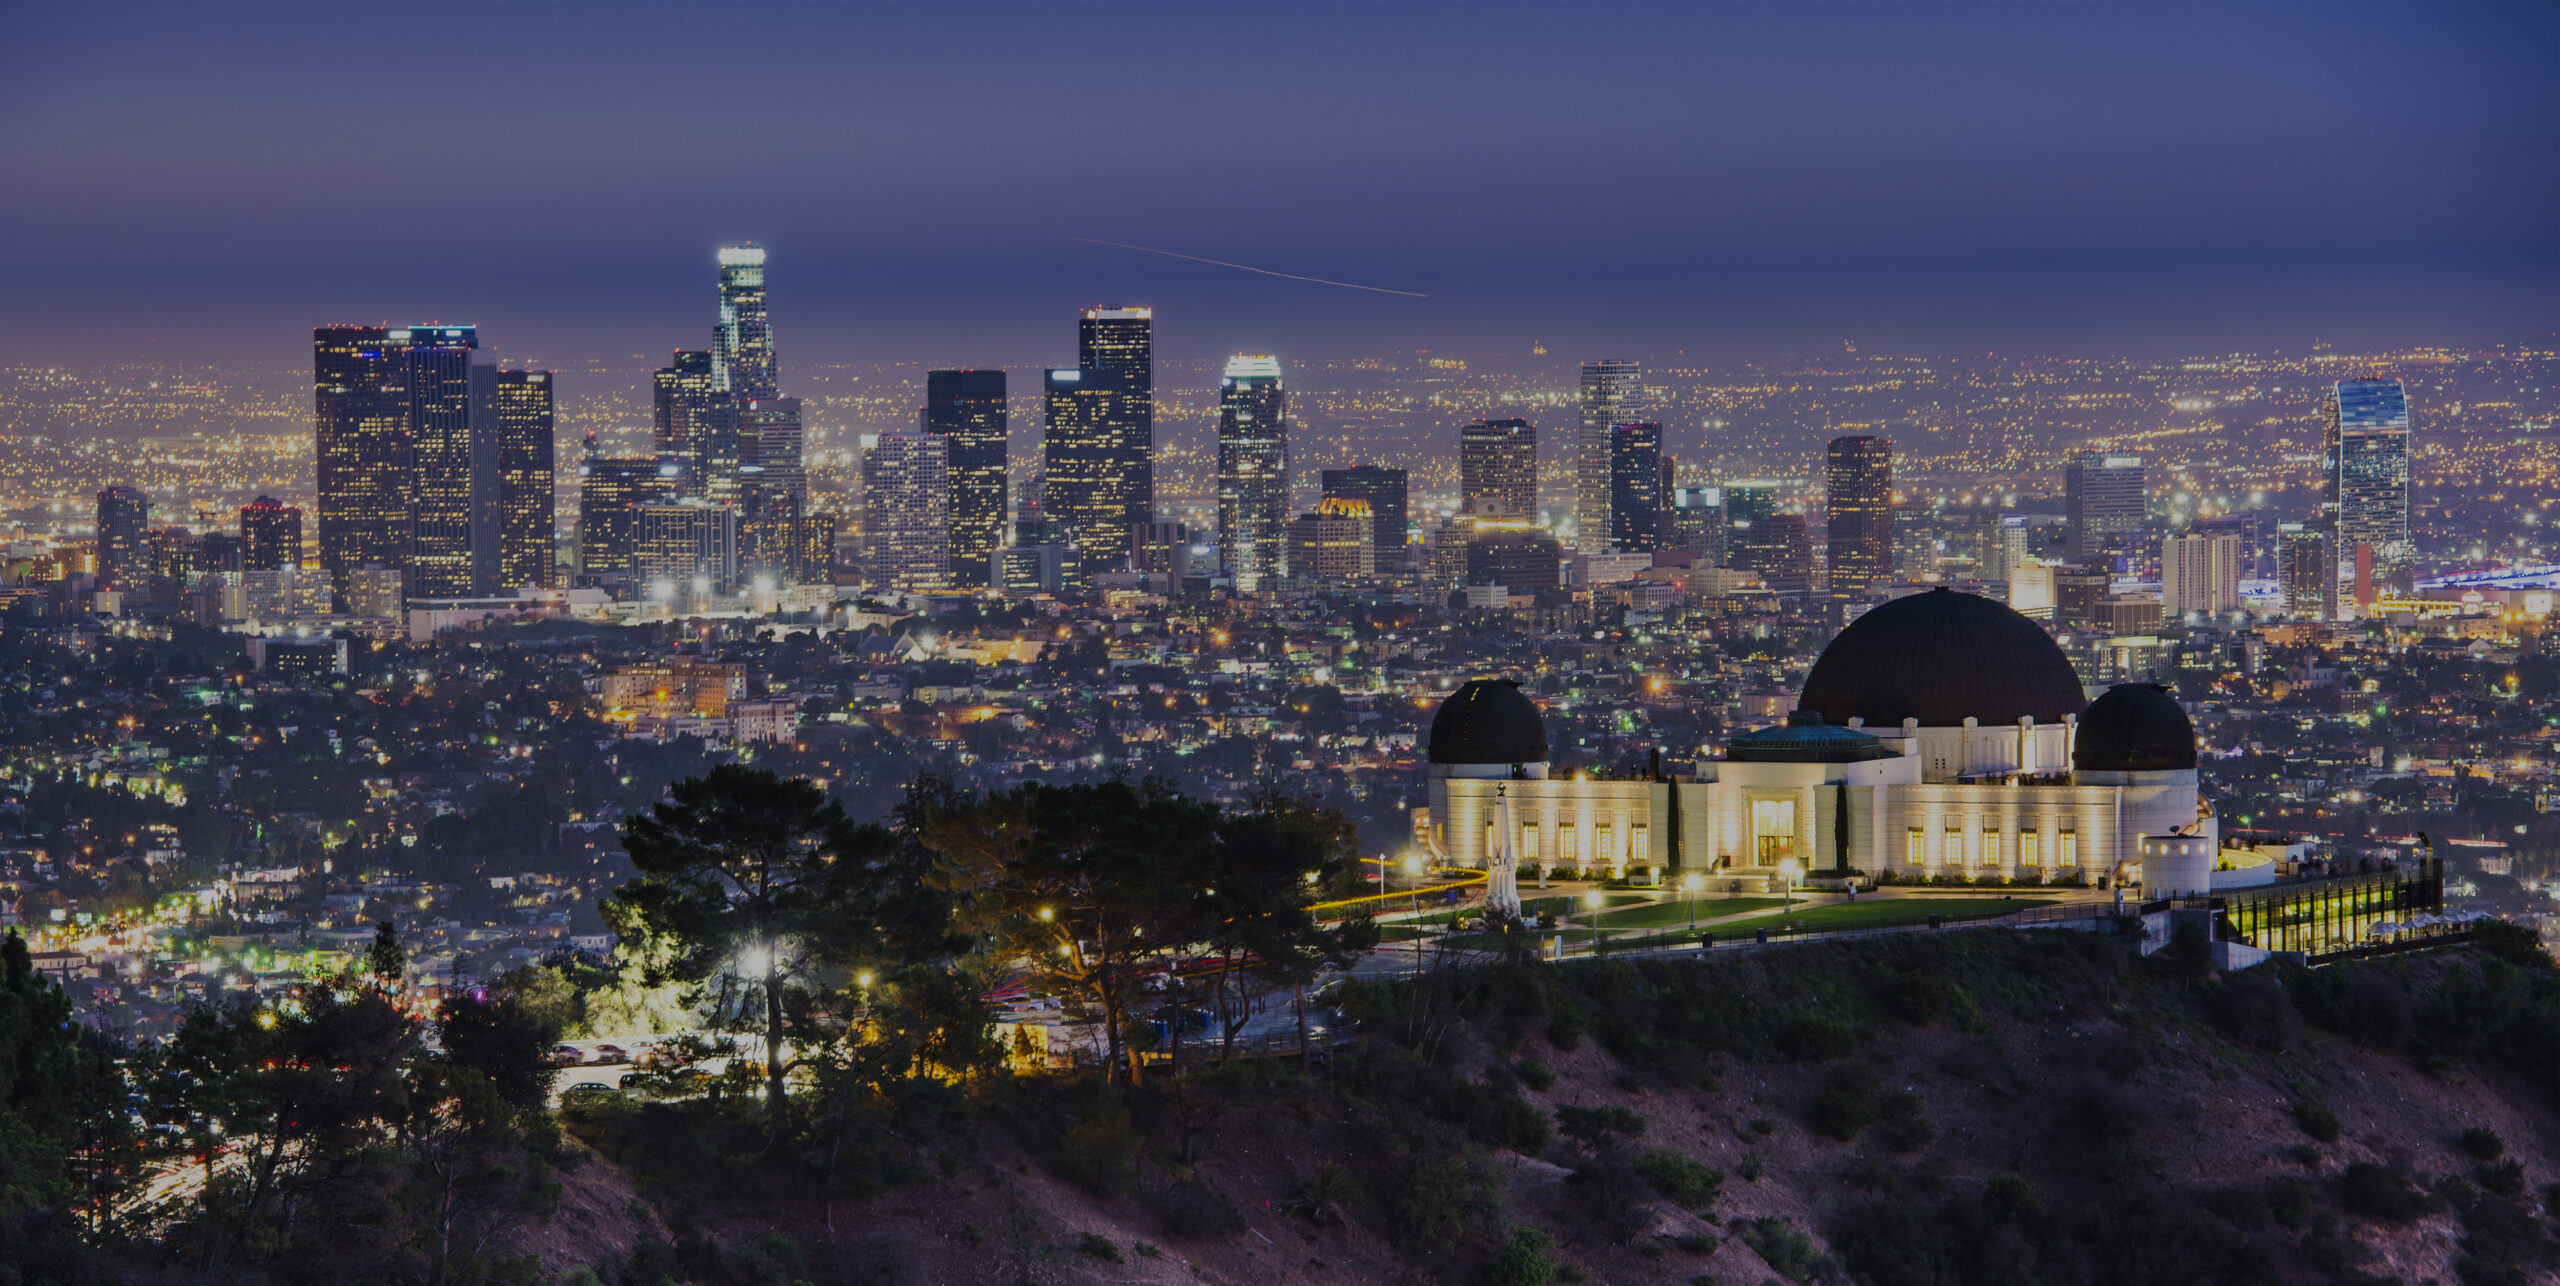 Griffith Obervatory and Downtown Los Angeles, California, USA skyline at dawn.